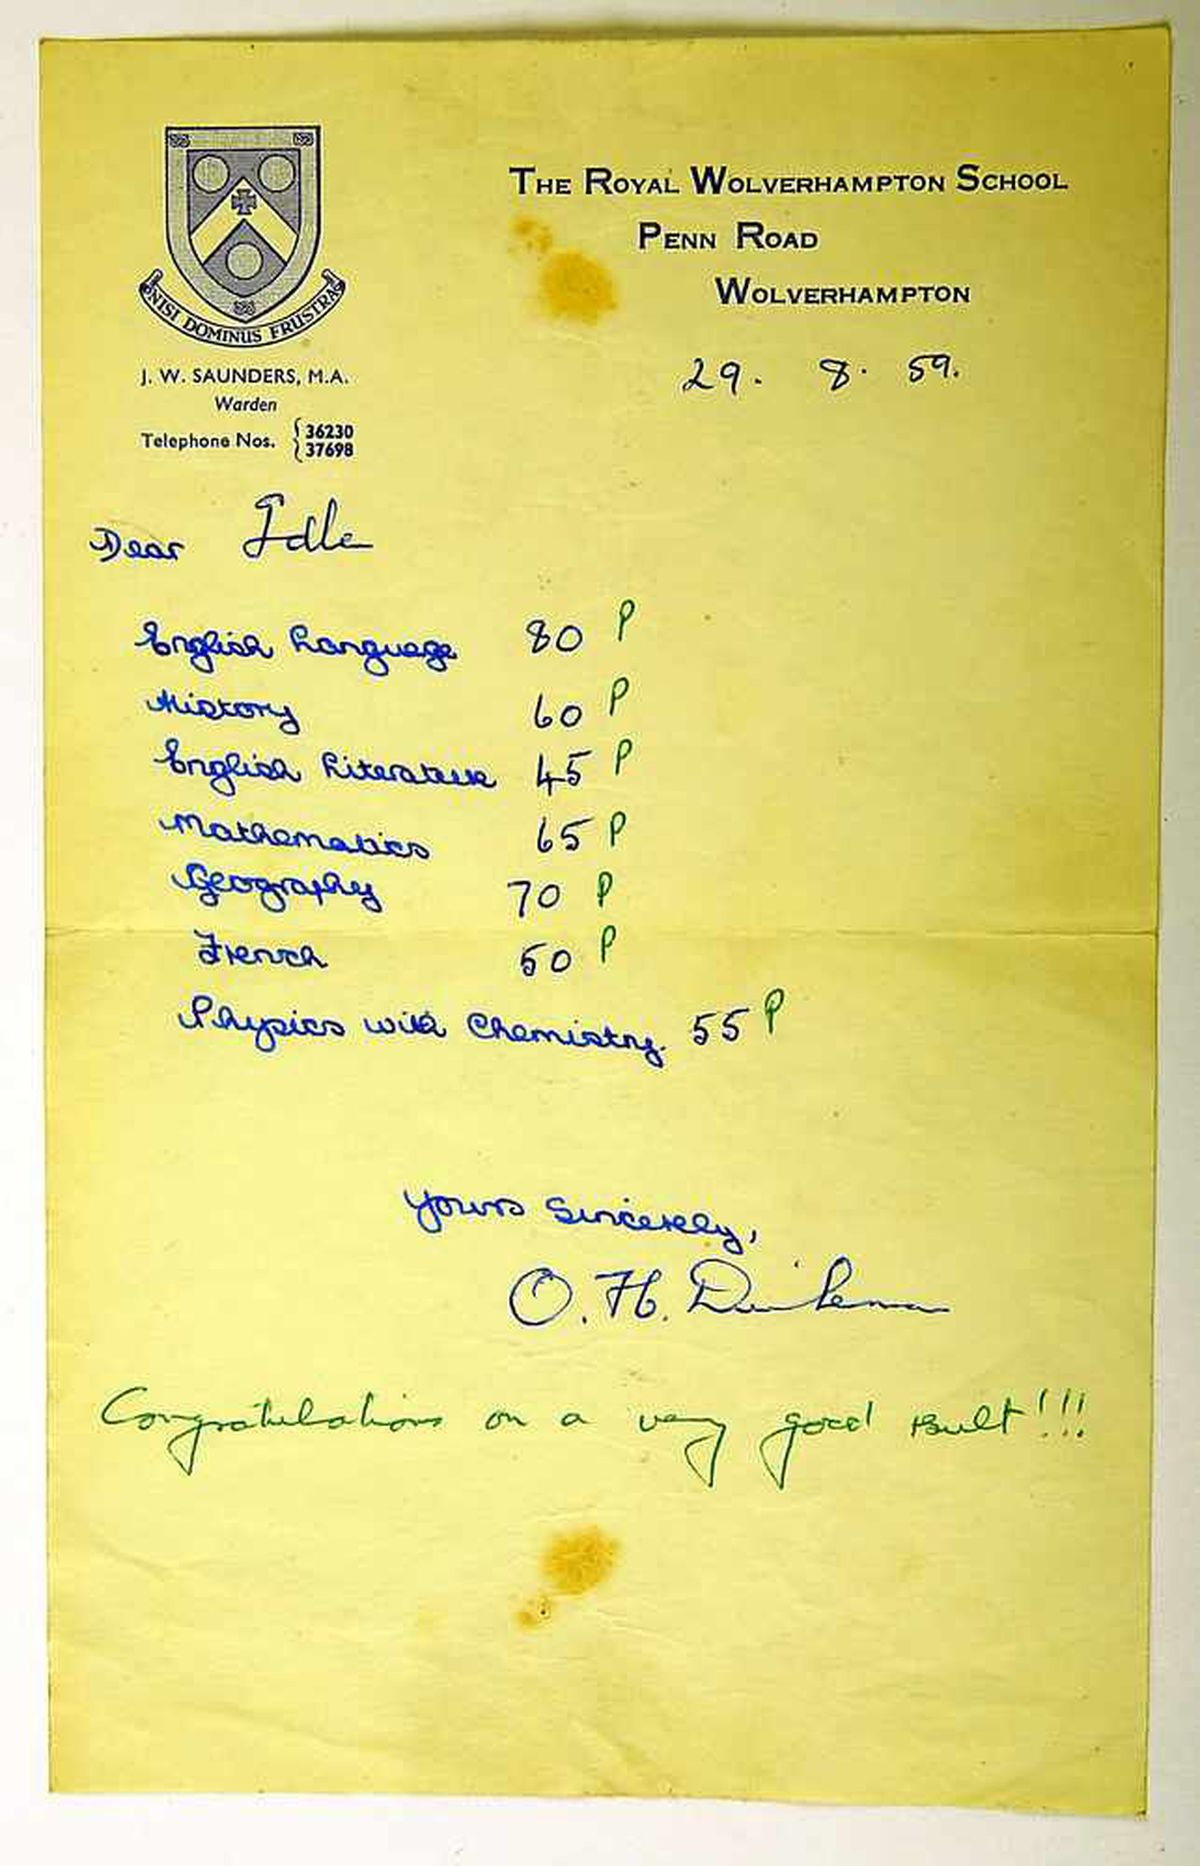 Report from the Royal Wolverhampton School, 1959